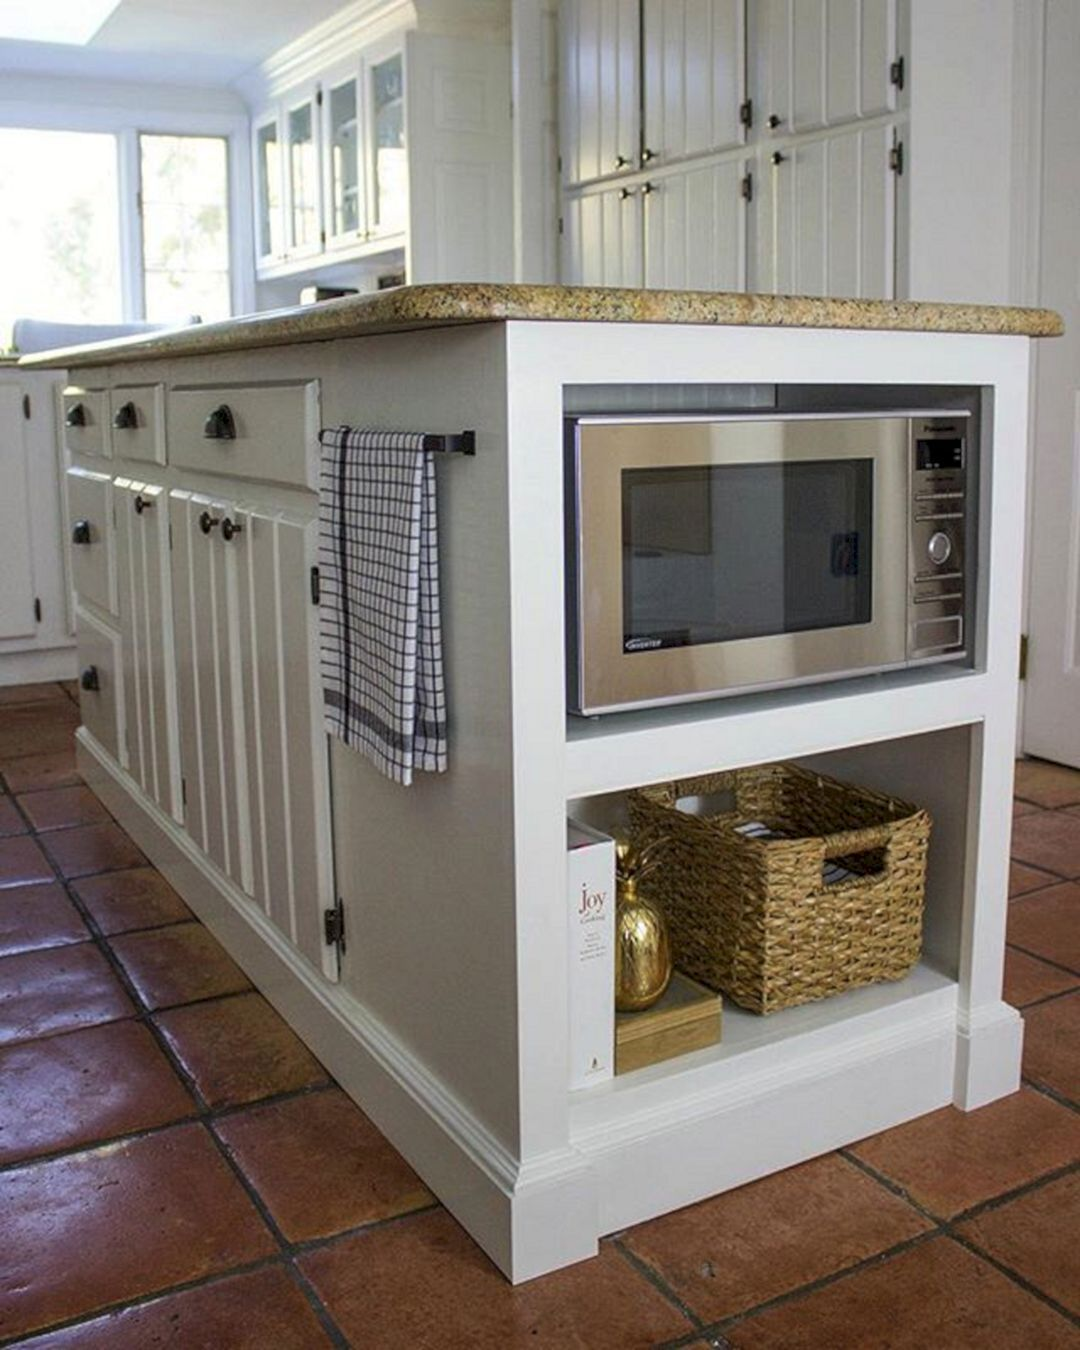 Under Kitchen Cabinet Ideas and Pics of